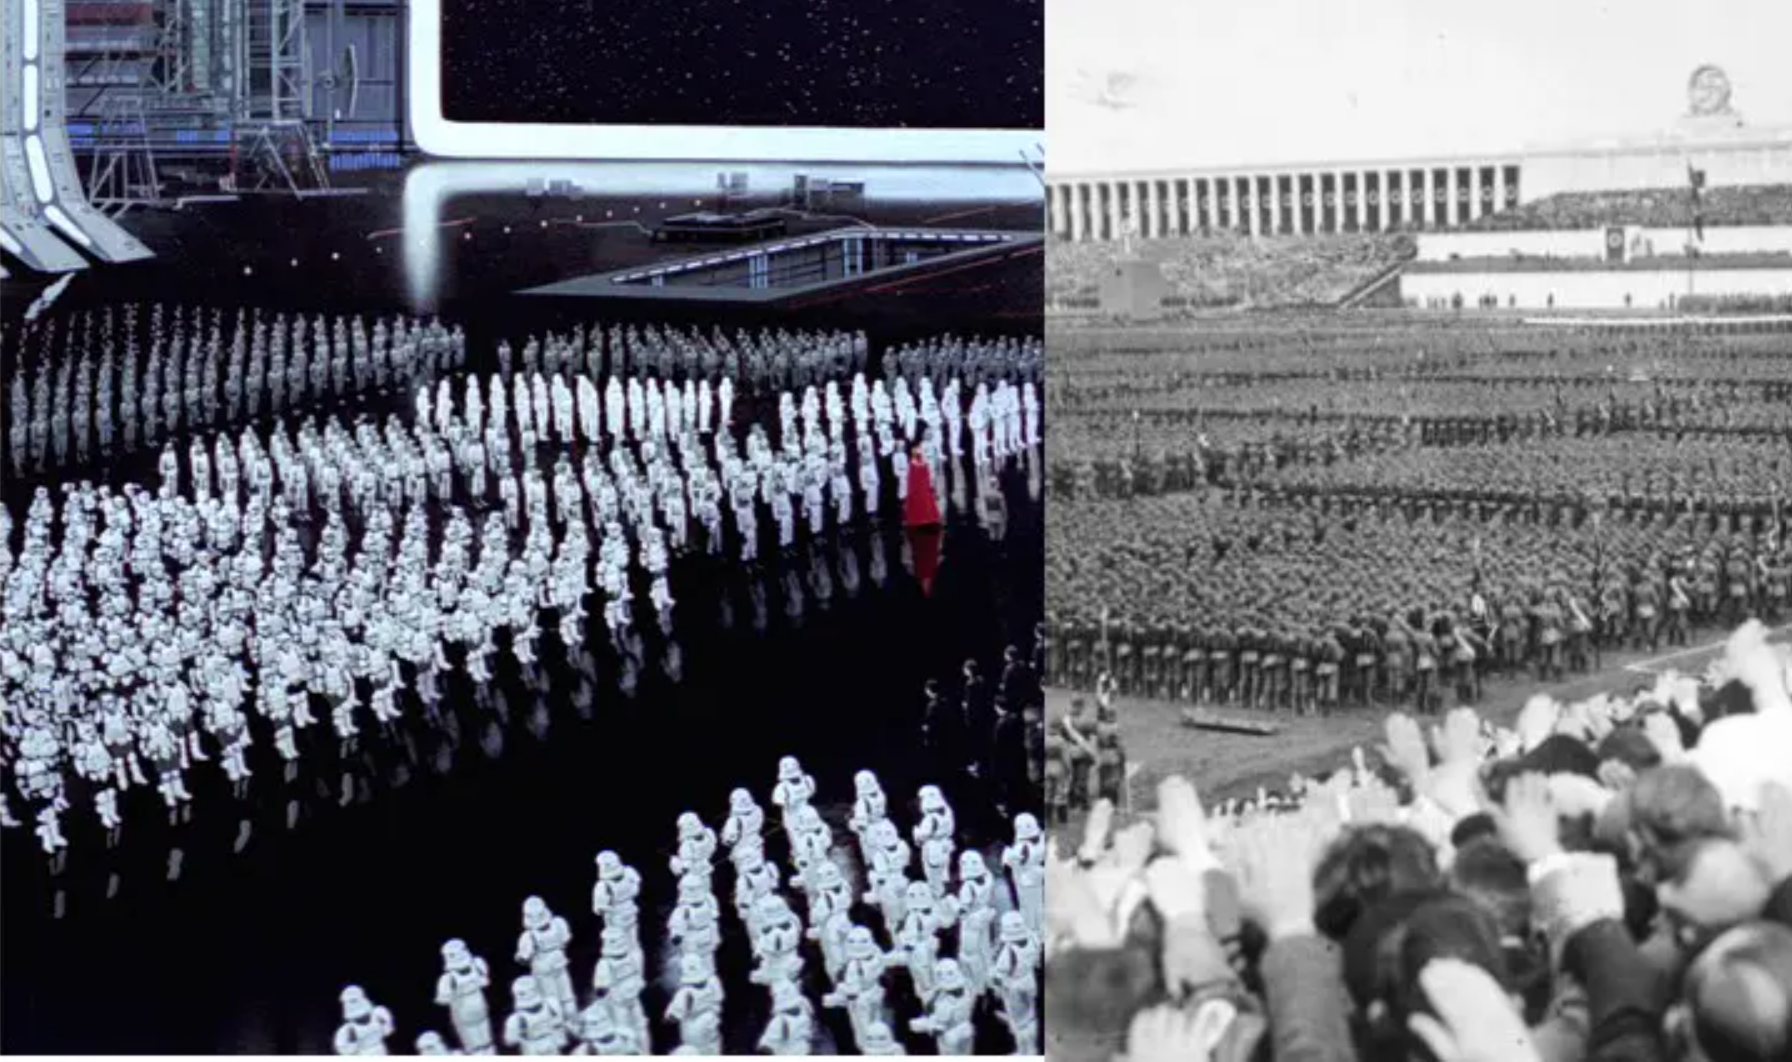 www.wearethemighty.com: The real military history on display in the 'Star Wars' Saga